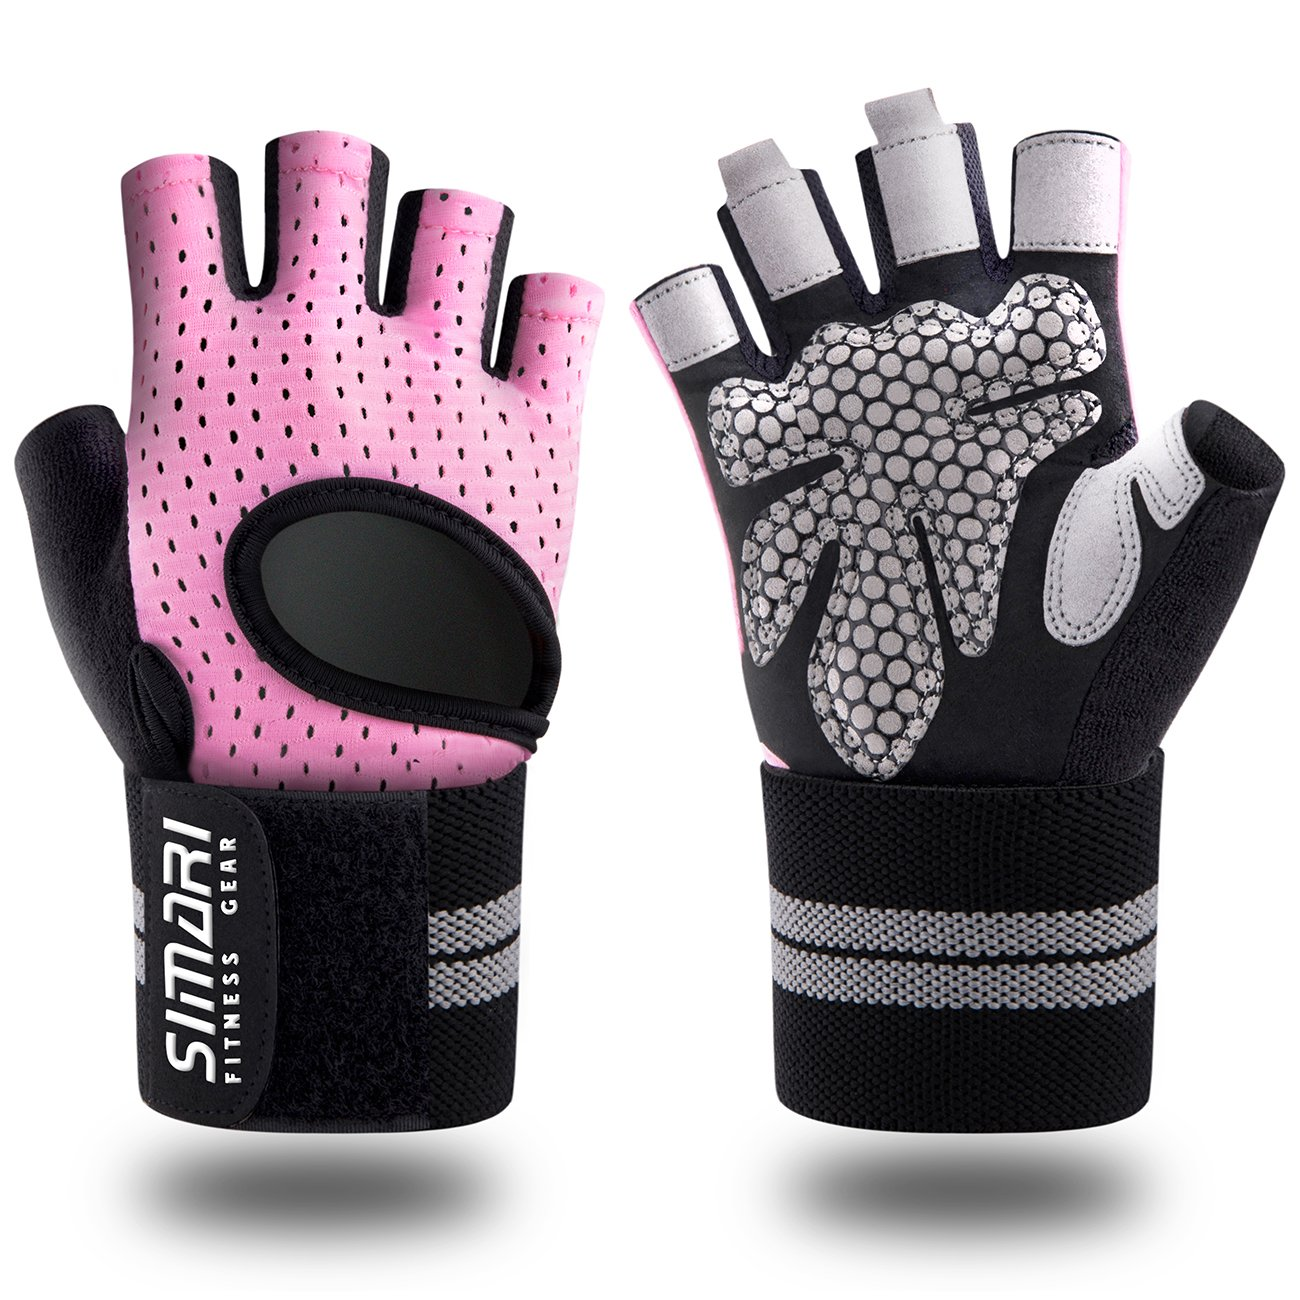 SIMARI Workout Glovesfor Women Men,Training Gloves with Wrist Support for Fitness Exercise Weight Lifting Gym Crossfit,Made of Microfiber and Lycra SMRG902(Pink XL) by SIMARI